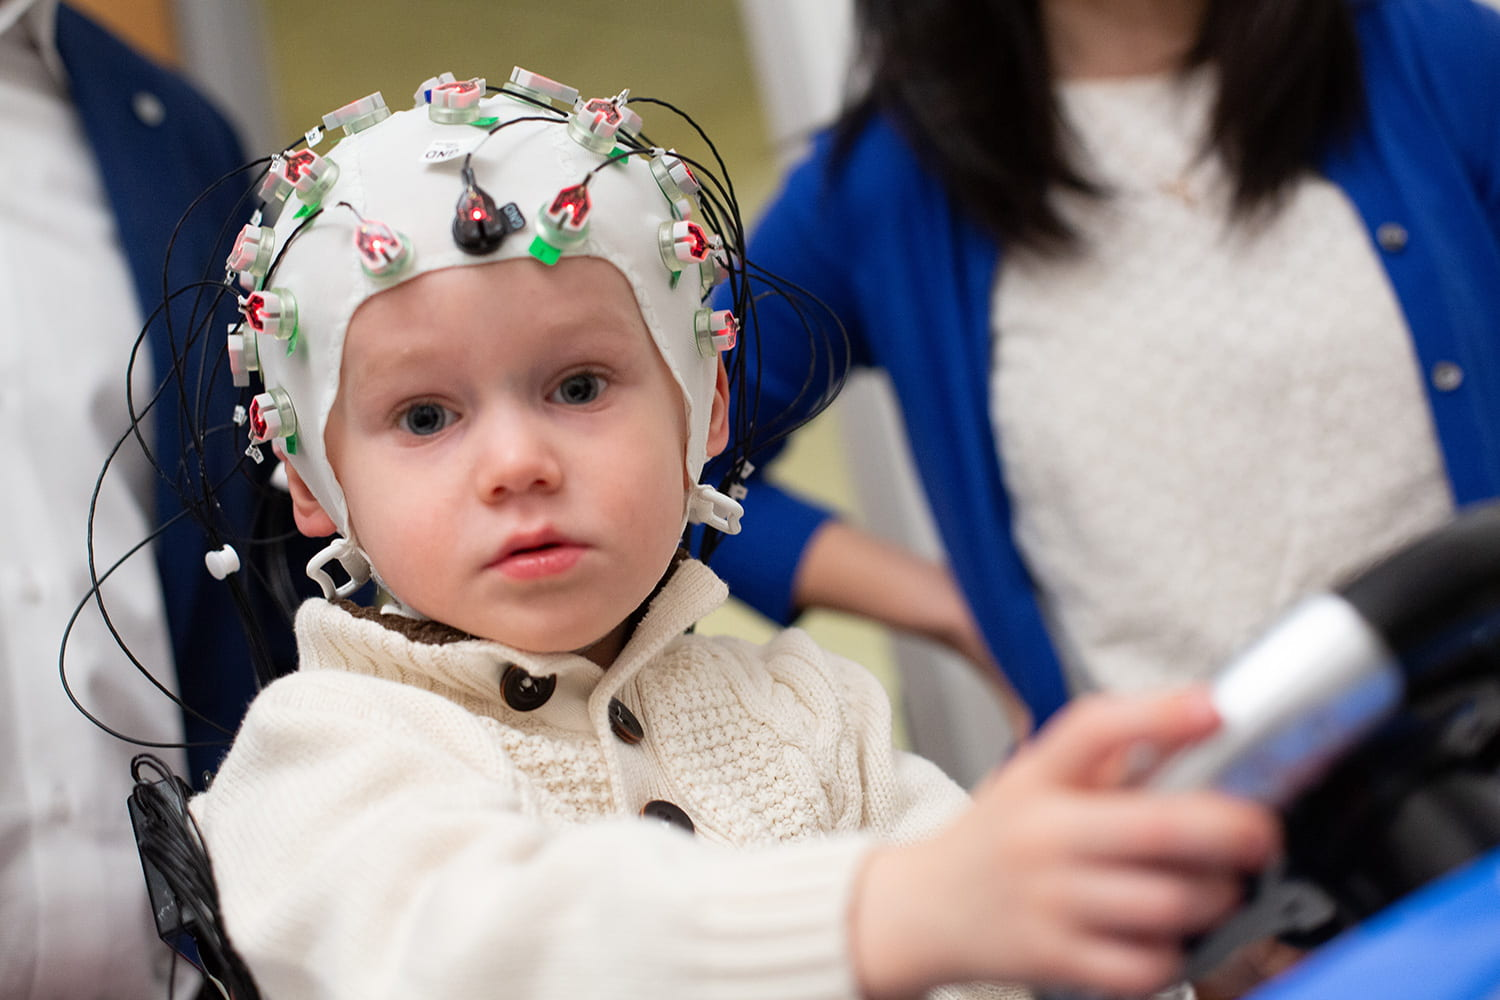 Child research subject wearing EEG cap.